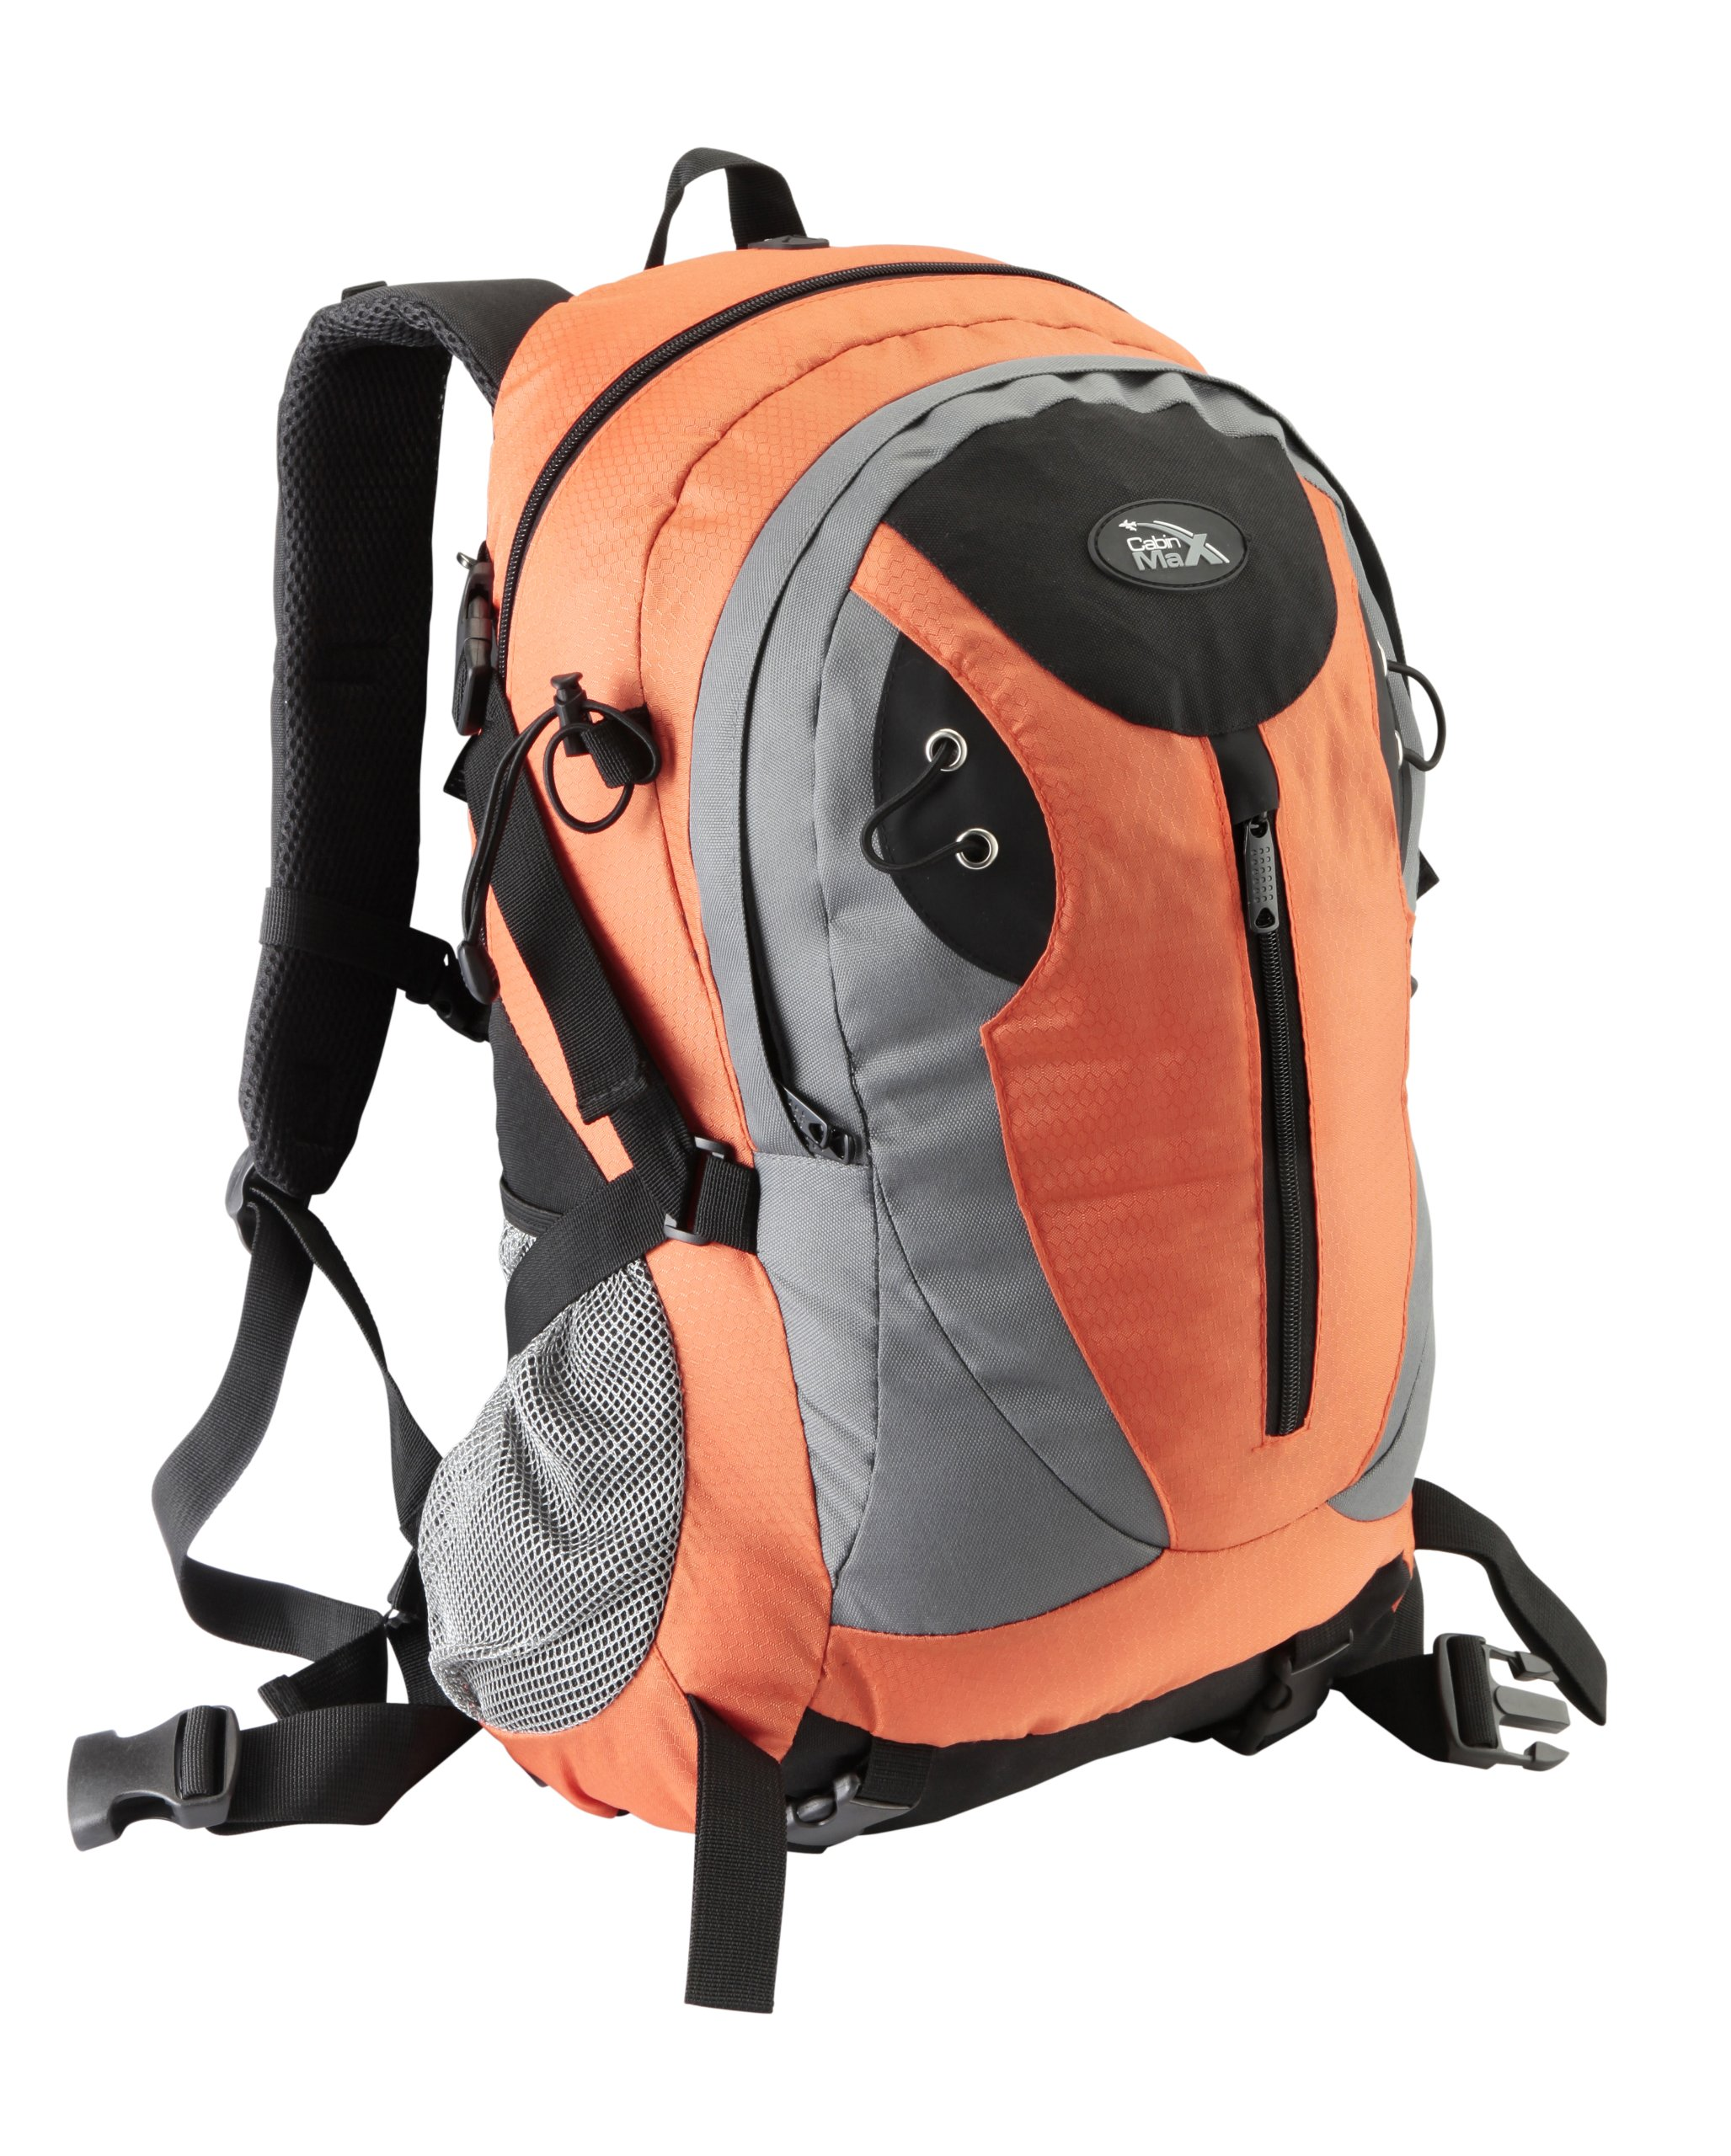 Cabin Max Arena Lightweight Multi-Function Backpack for Travel, Gym, Hiking and Everyday Use (orange)